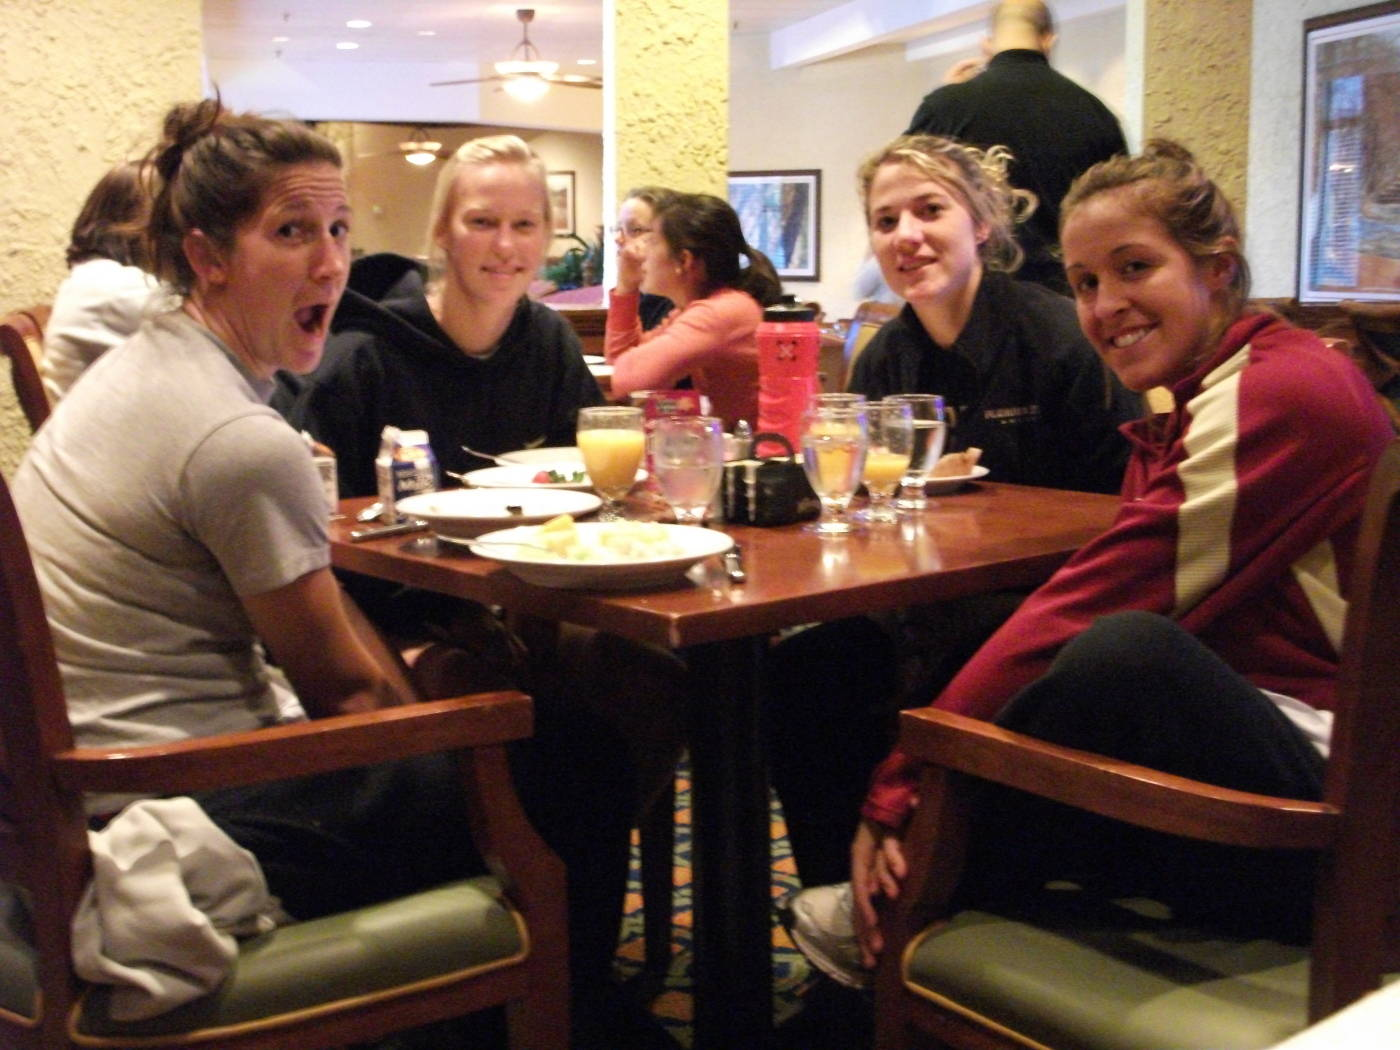 Kimmy Diaz, Ella Stephan, Becky Edwards and Amanda DaCosta at breakfast